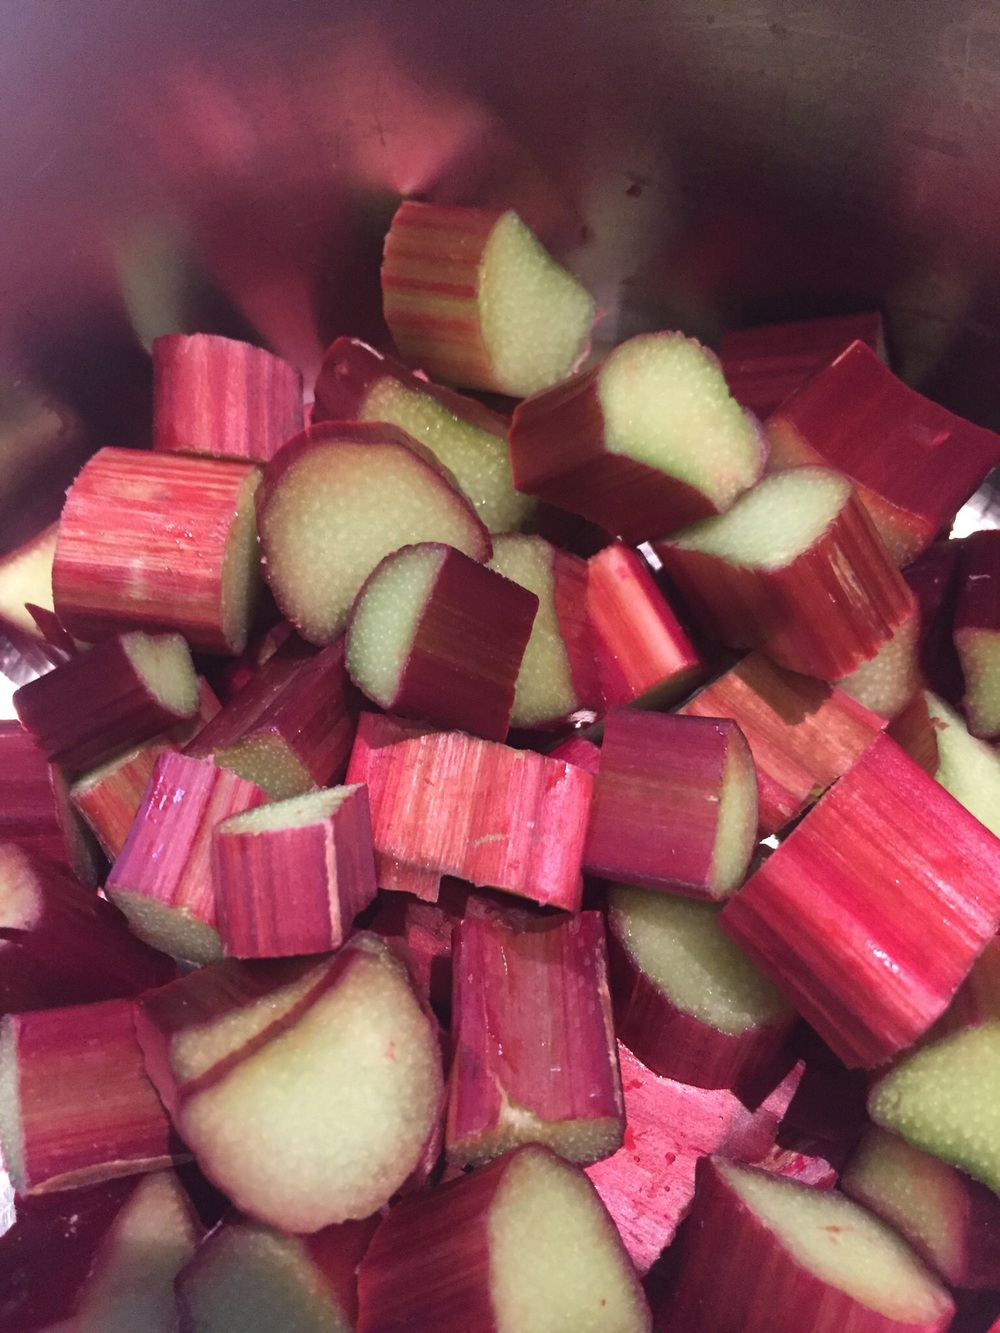 Poached rhubarb for my breakfast